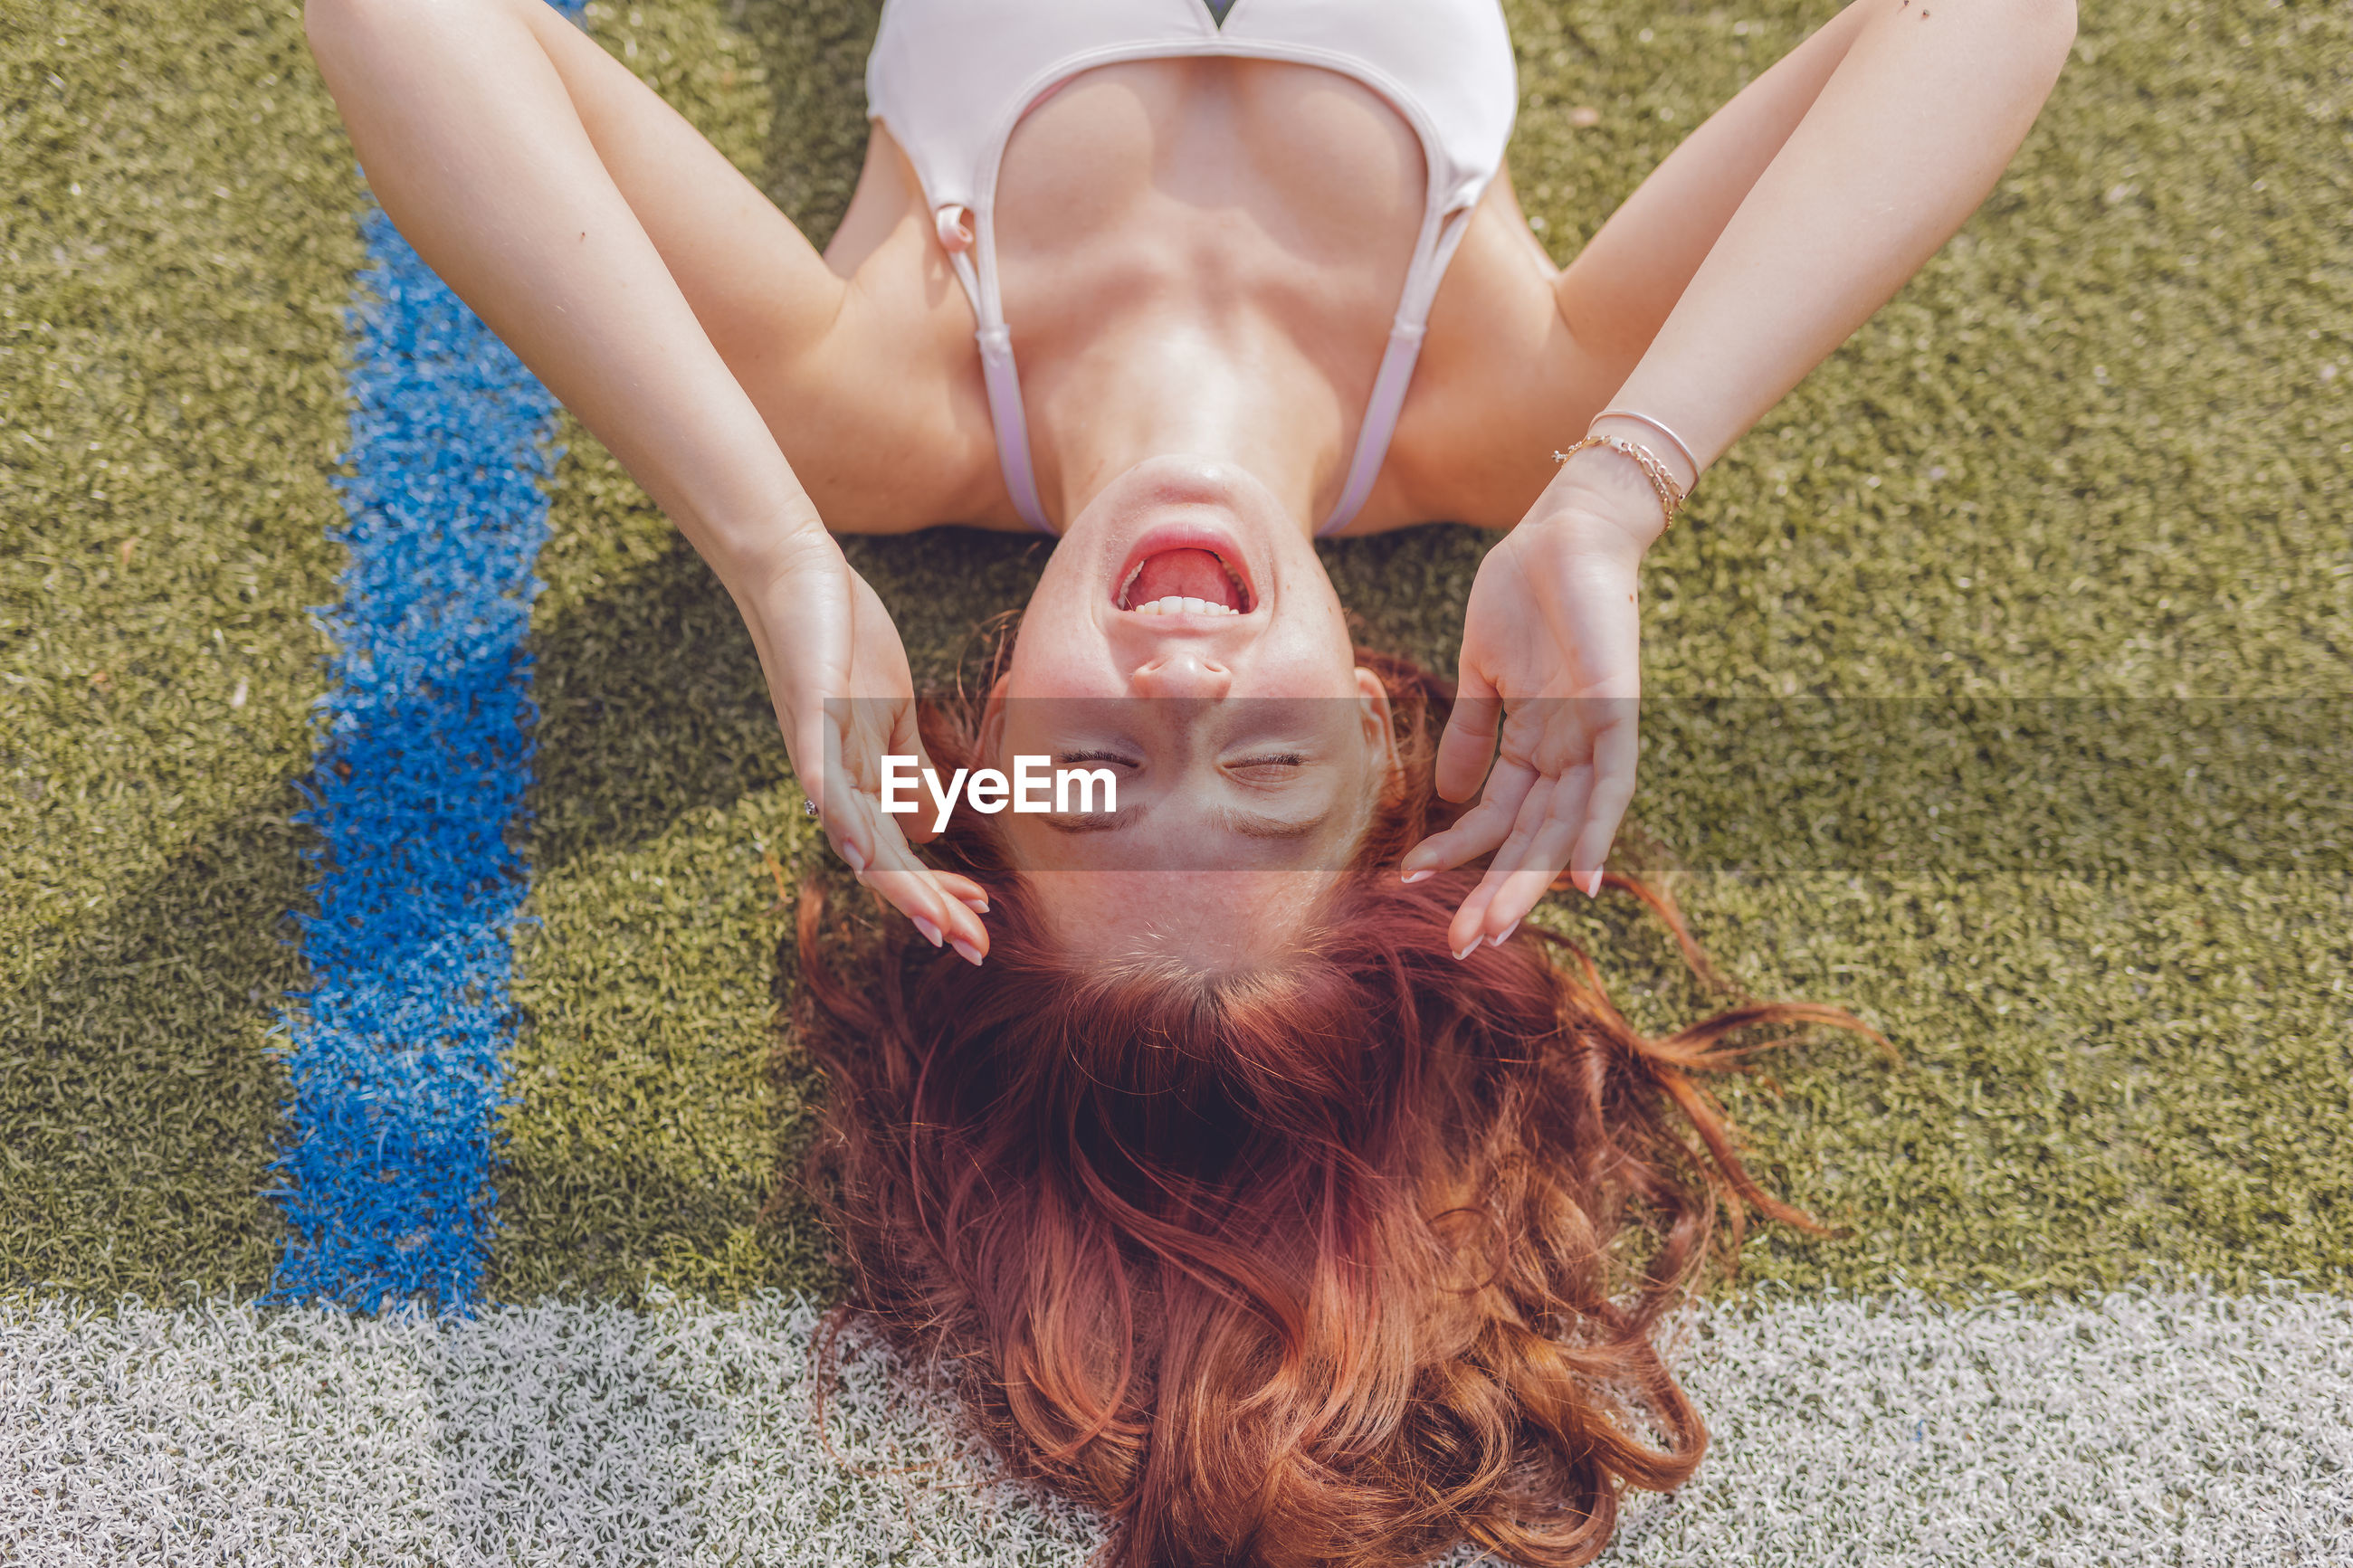 High angle view of young woman lying on field